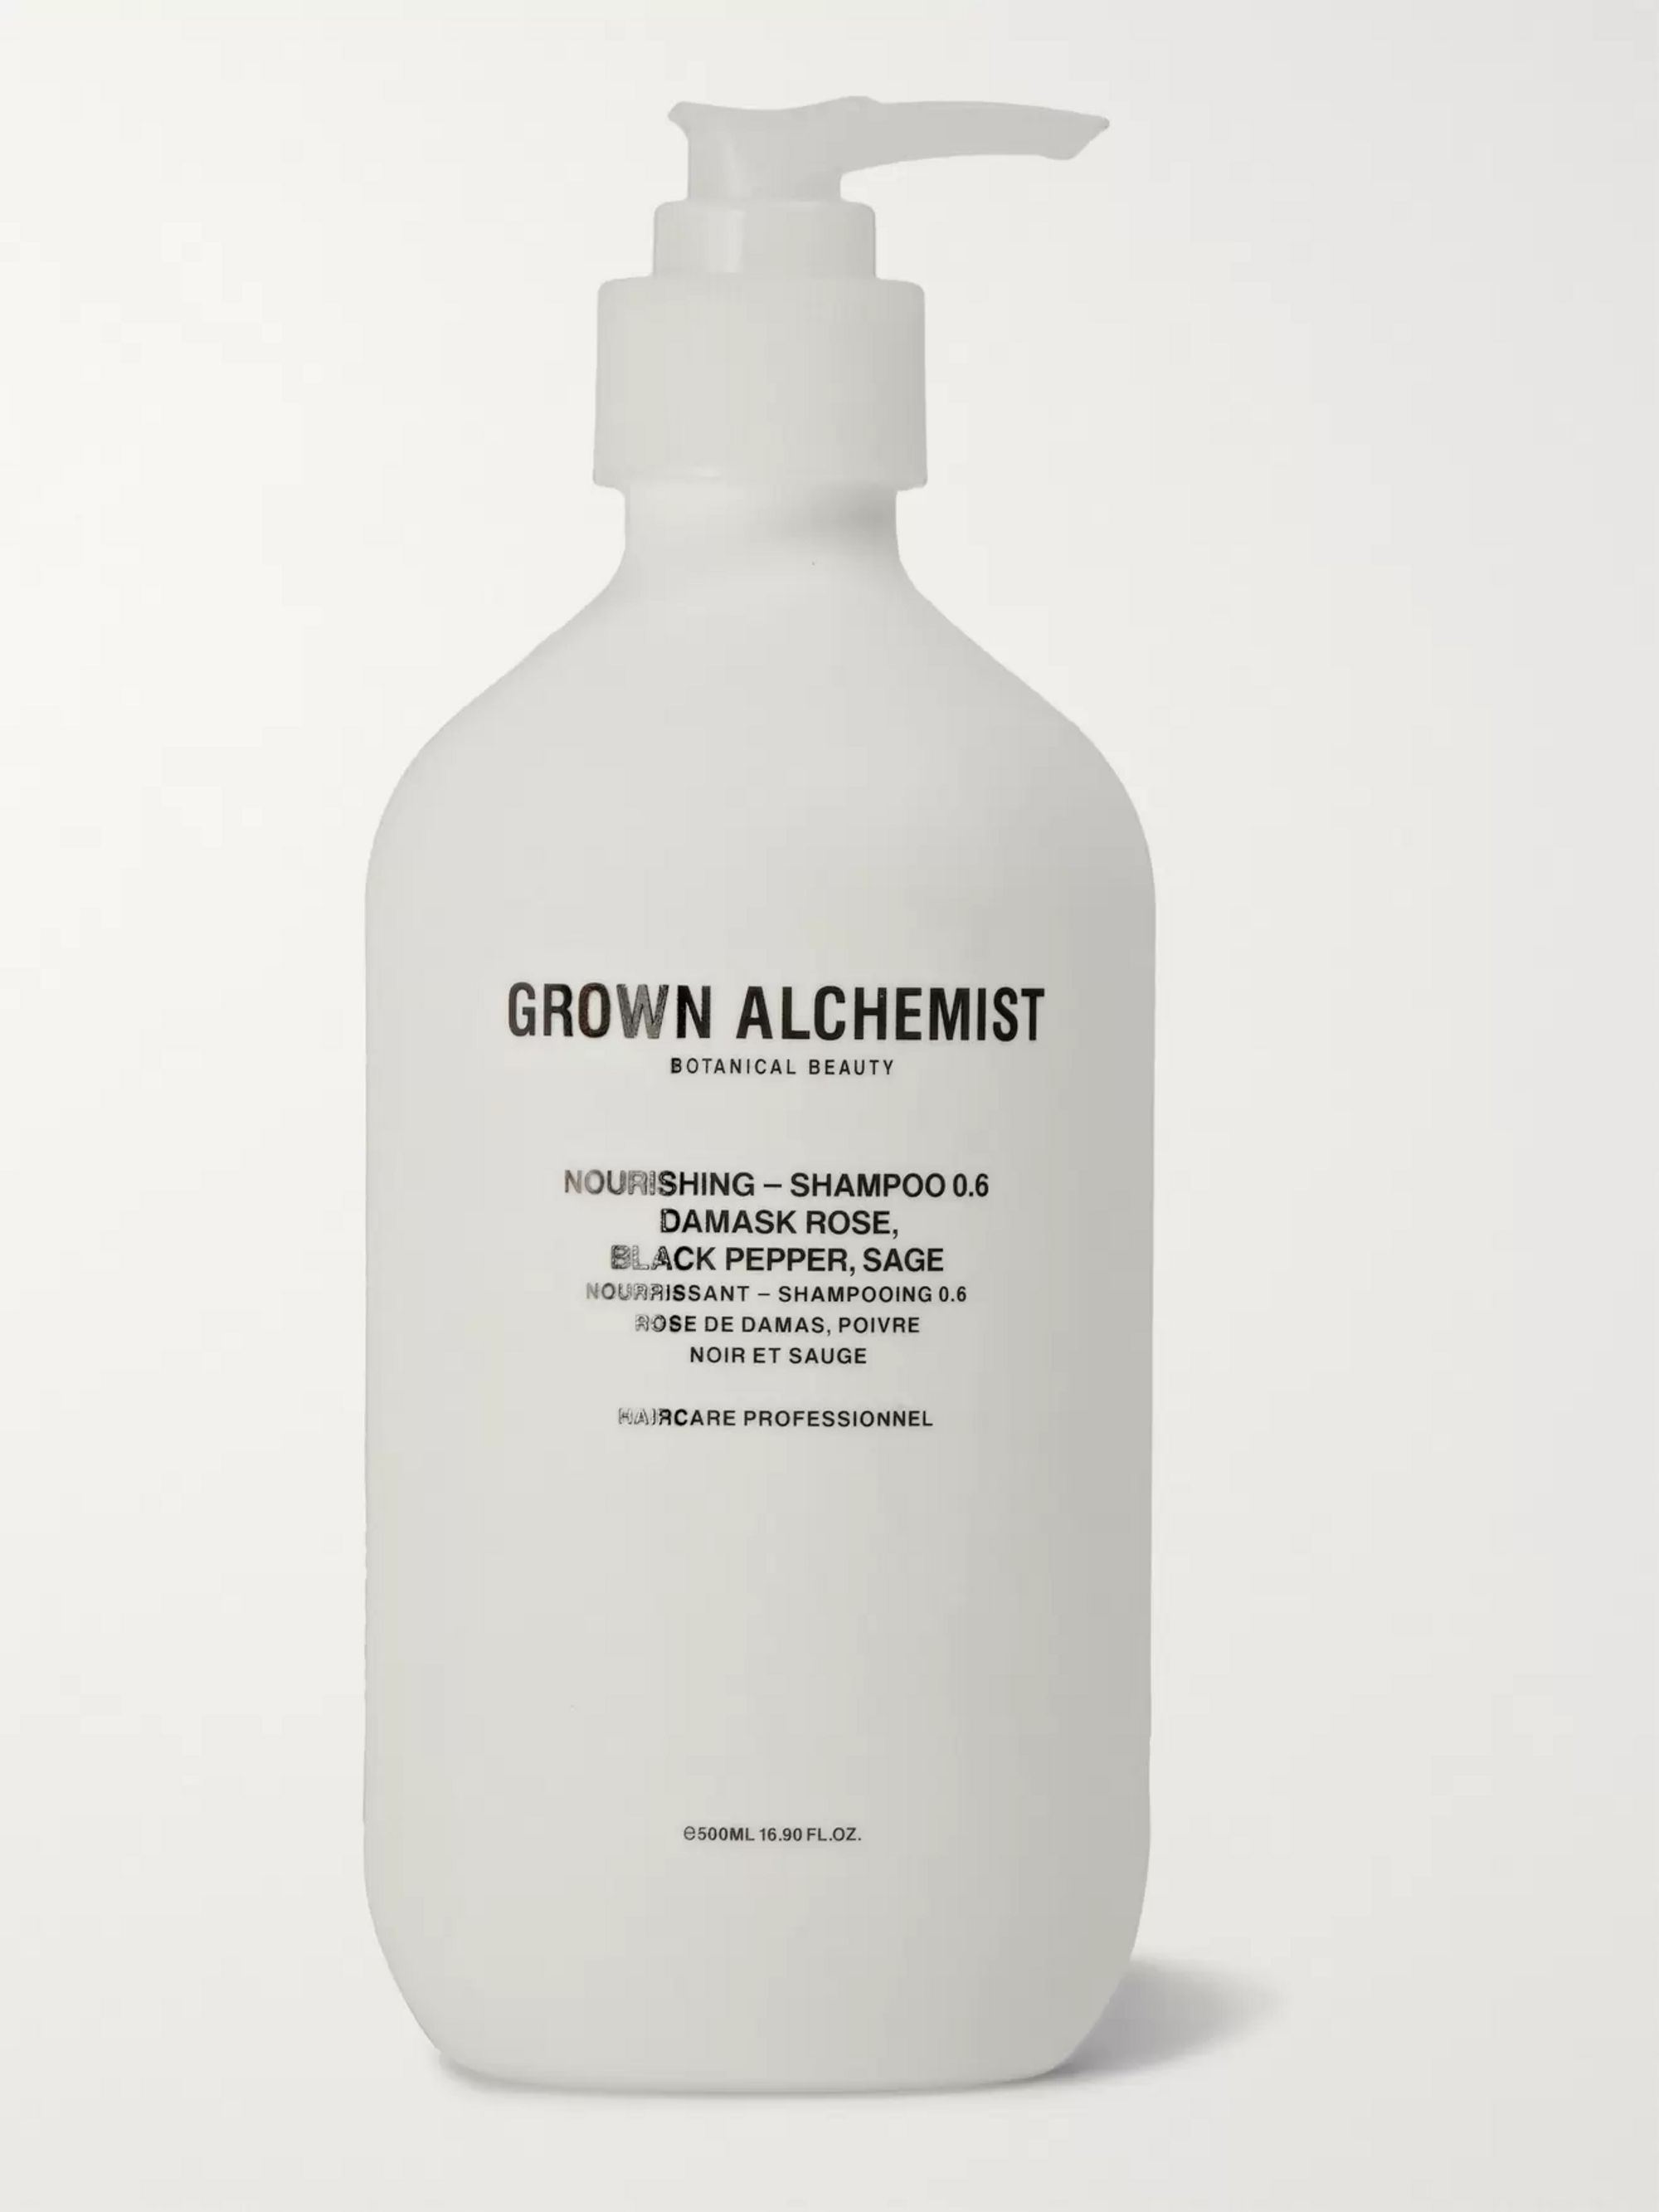 Grown Alchemist Nourishing Shampoo 0.6 - Damask Rose, Black Pepper and Sage, 500ml